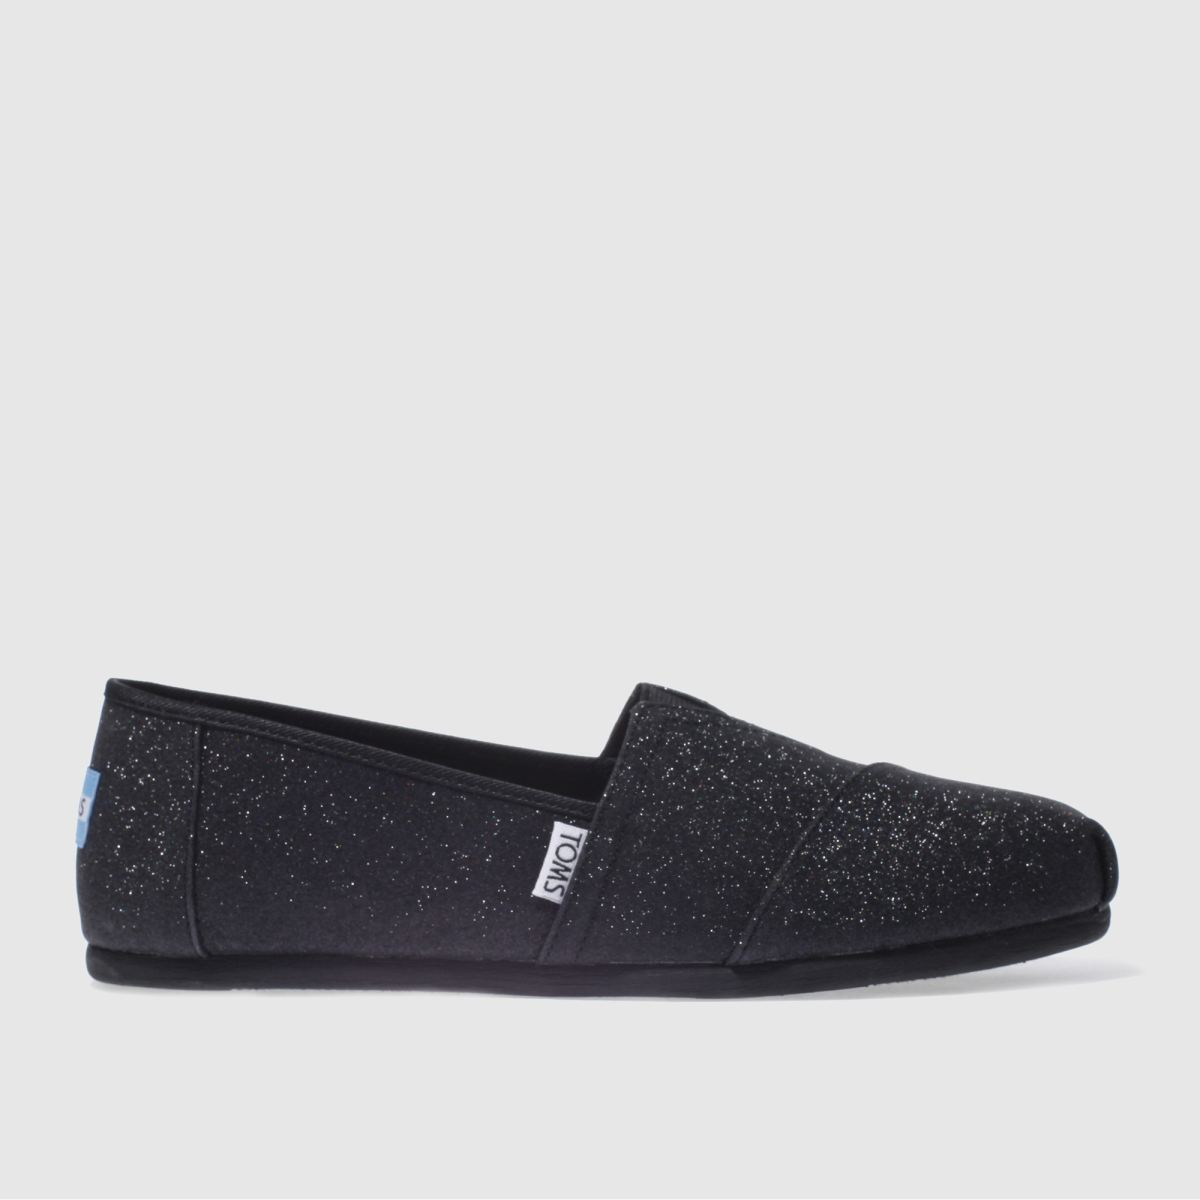 toms black alpargata glimmer flat shoes